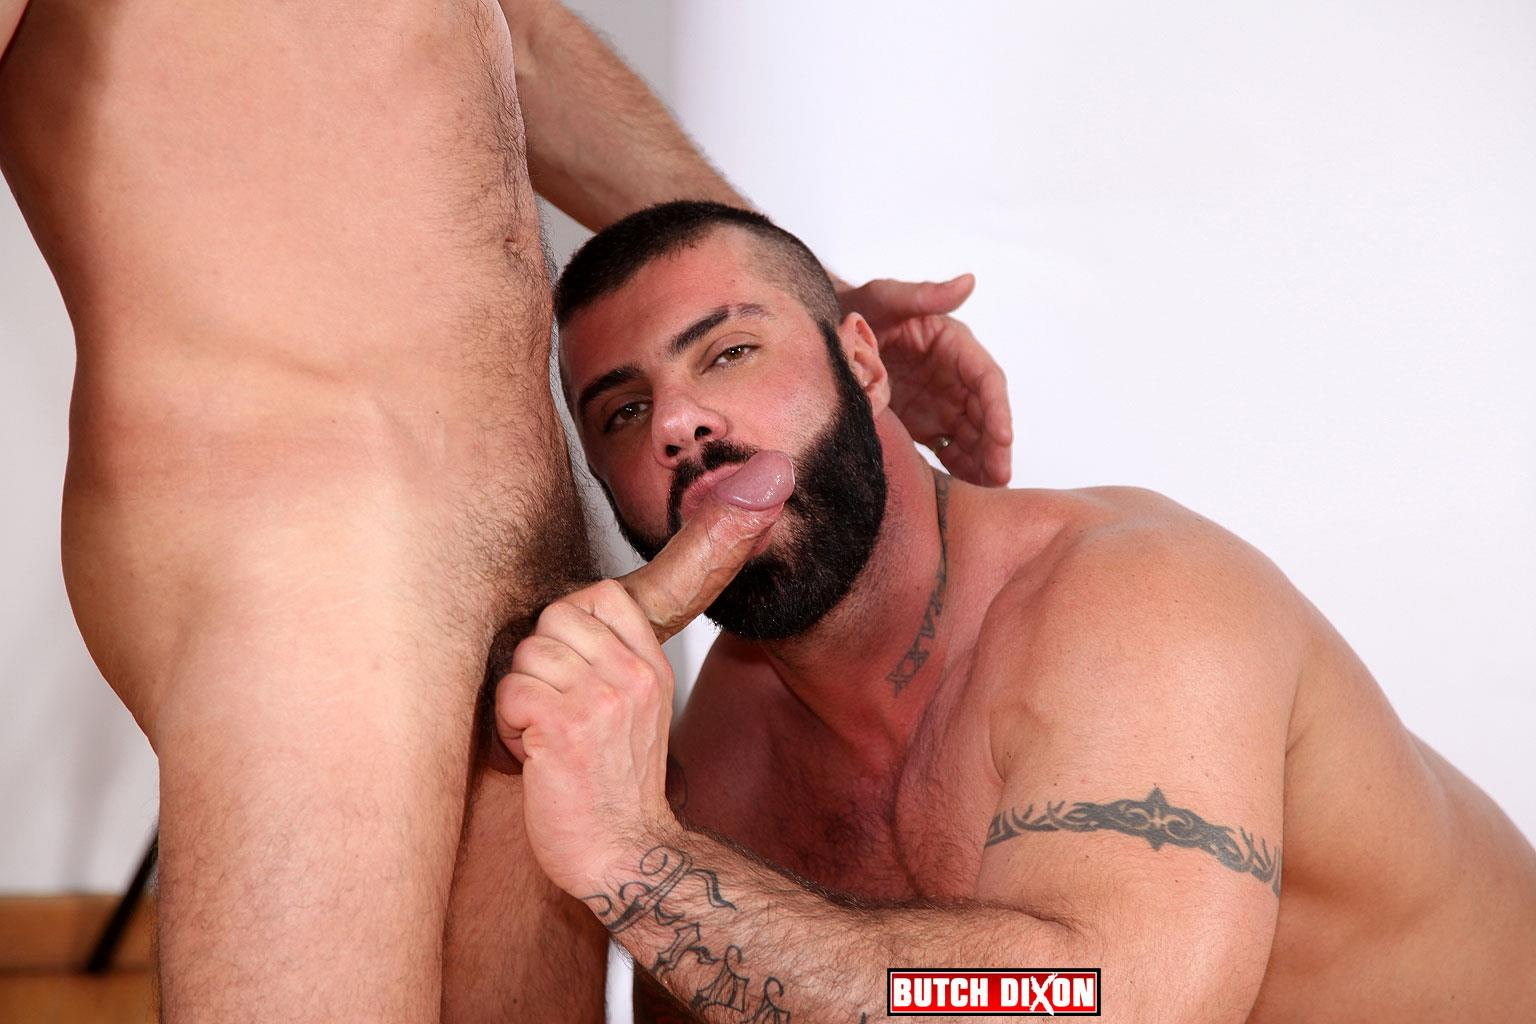 Butch Dixon Alex Marte and Antonio Garcia Beefy Hunks With Big Uncut Cocks Fucking Amateur Gay Porn 20 Beefy Burly Muscle Guys With Thick Uncut Cocks Fucking Hard